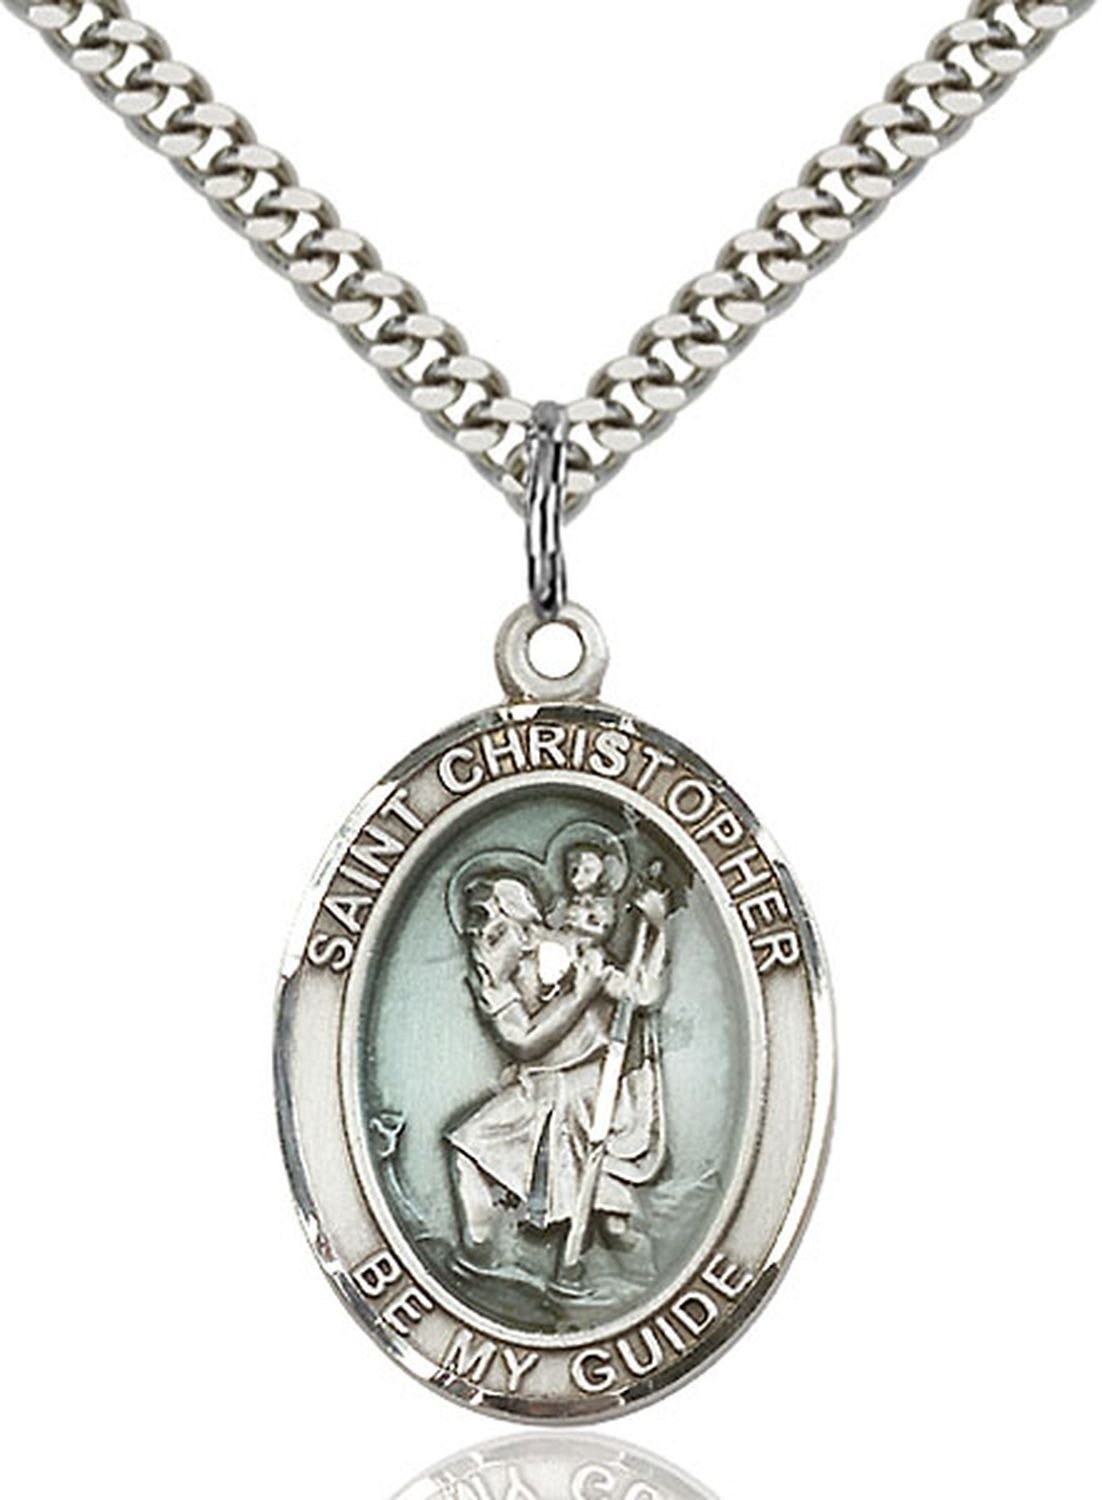 Pewter St. Christopher Pendant 1 x 3/4 Inches with Silver Plated Heavy Curb Chain